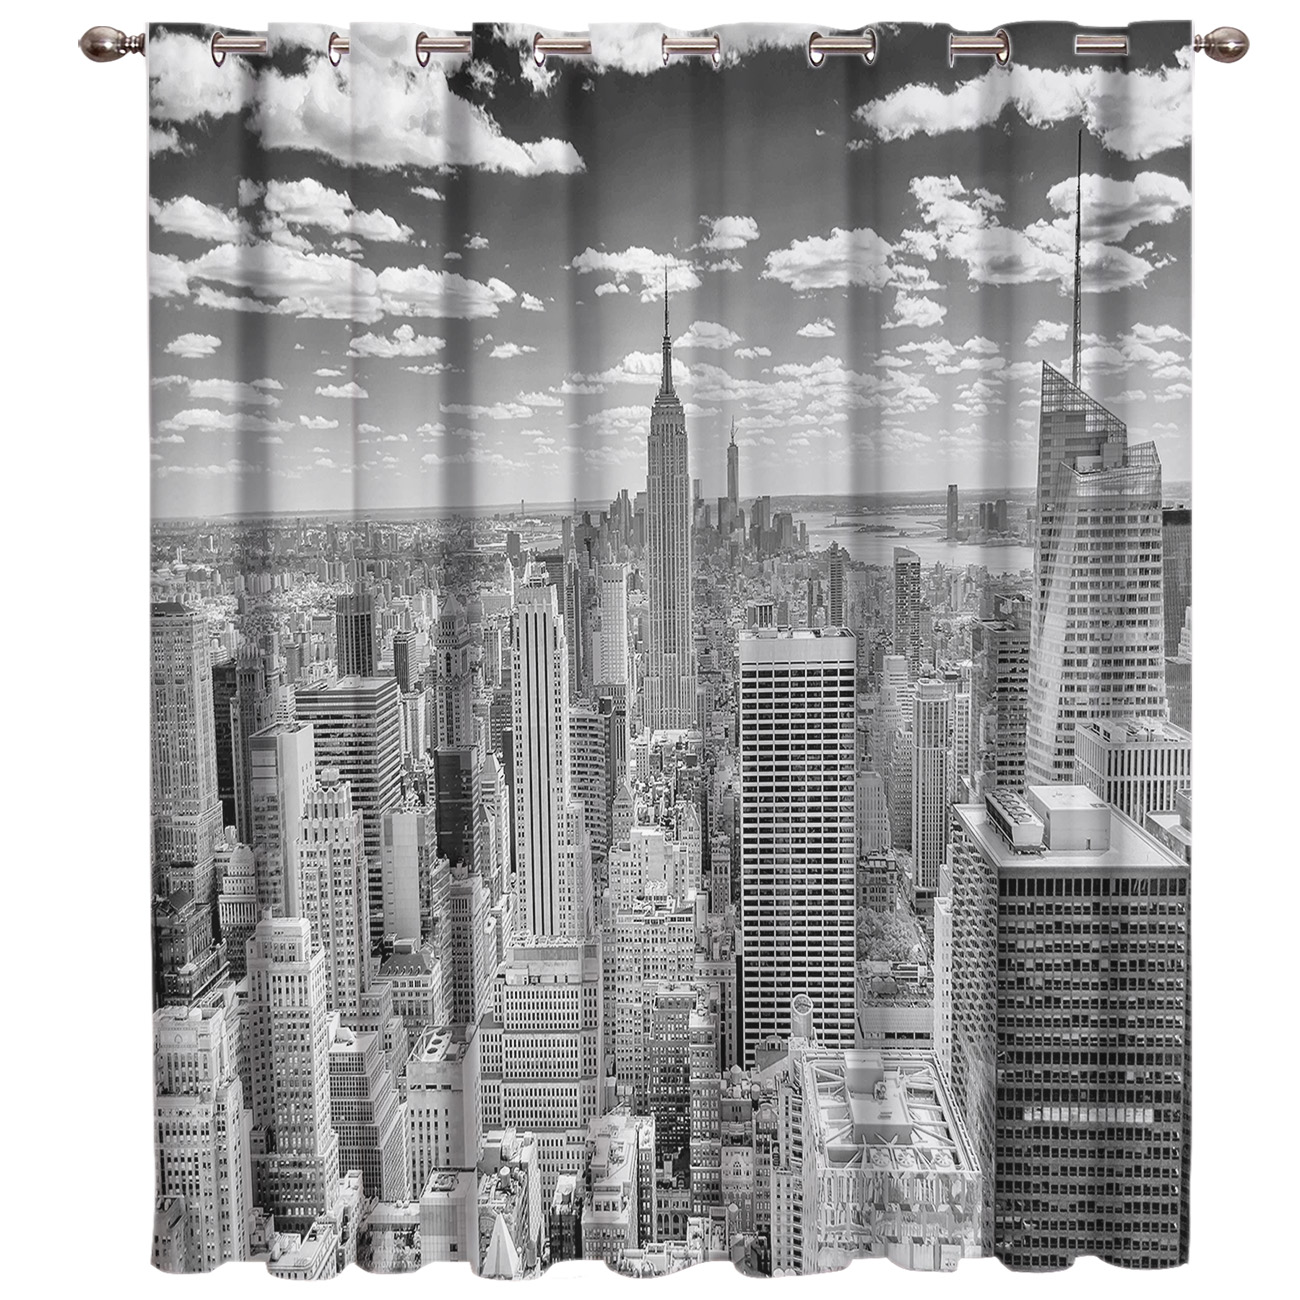 Grey New York City Room Curtains Large Window Window Curtains Dark Window Blinds Living Room Blackout Floral Decor Kids Window